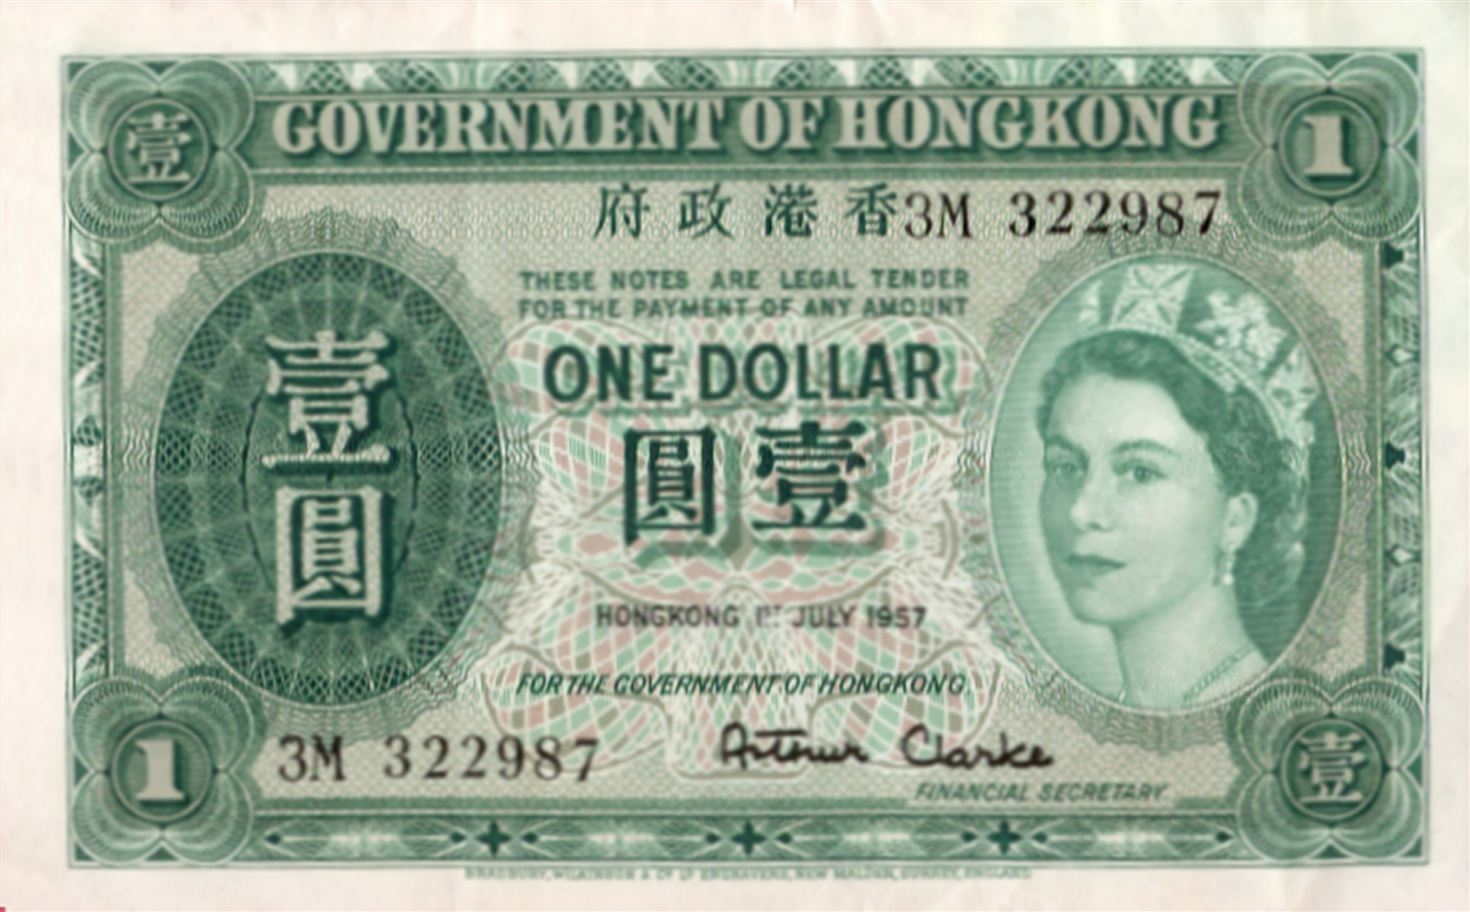 7000 Hkd To Usd